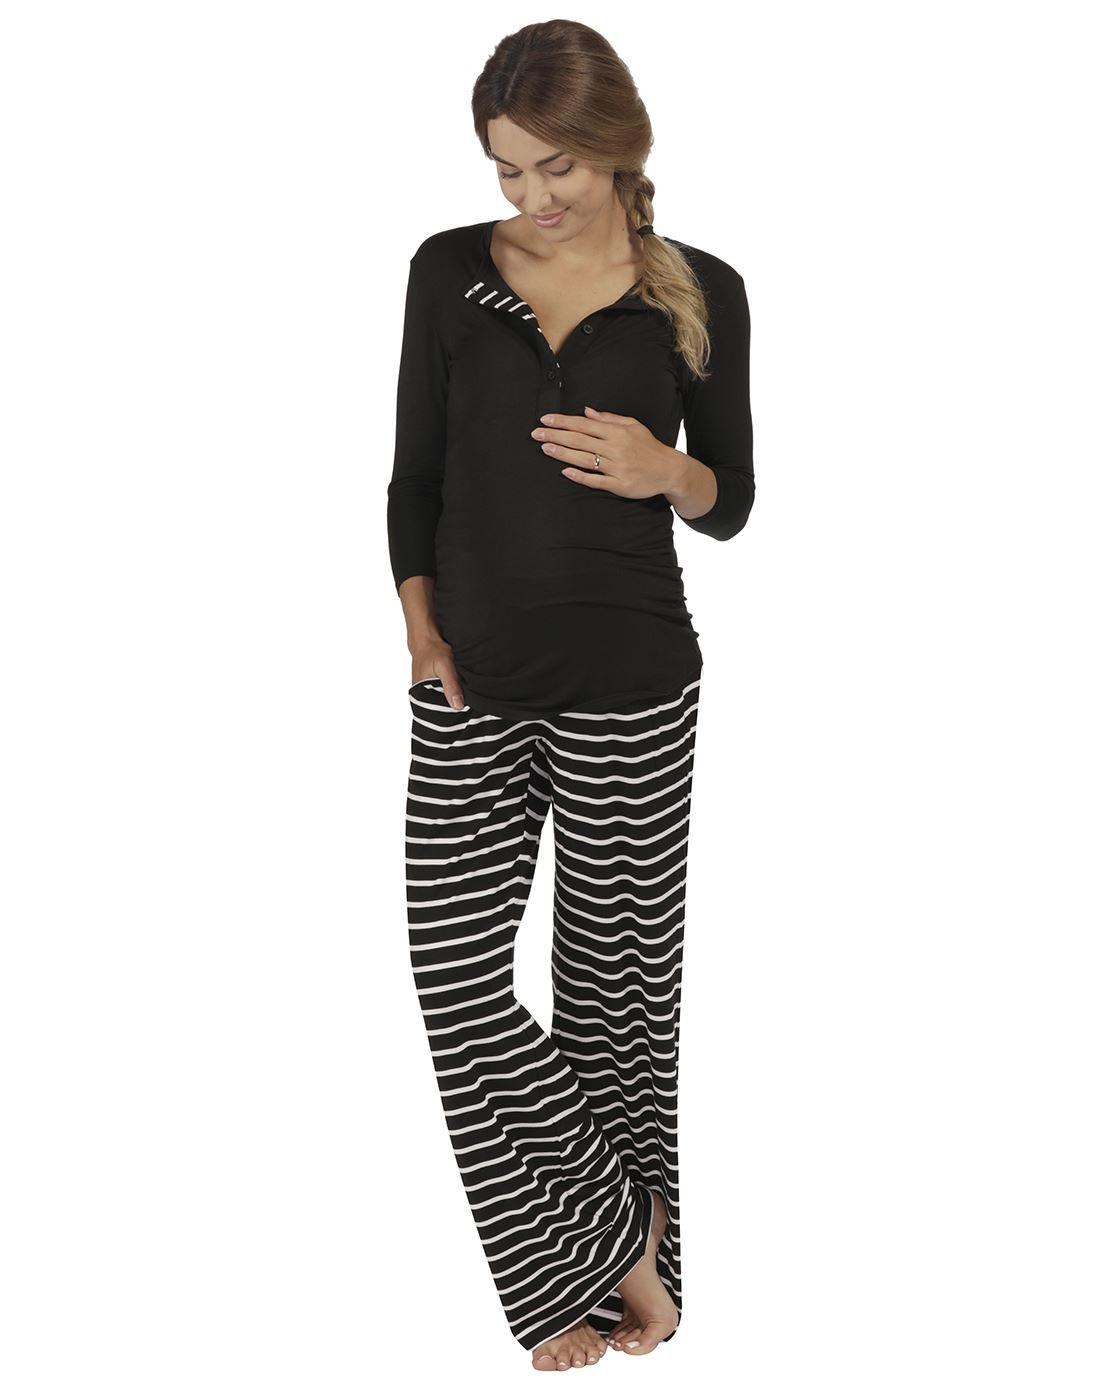 The Essential One - Womens Maternity Long-Sleeve Black Stripe Nursing Pyjamas - Black - Medium (8-10) - EOM203